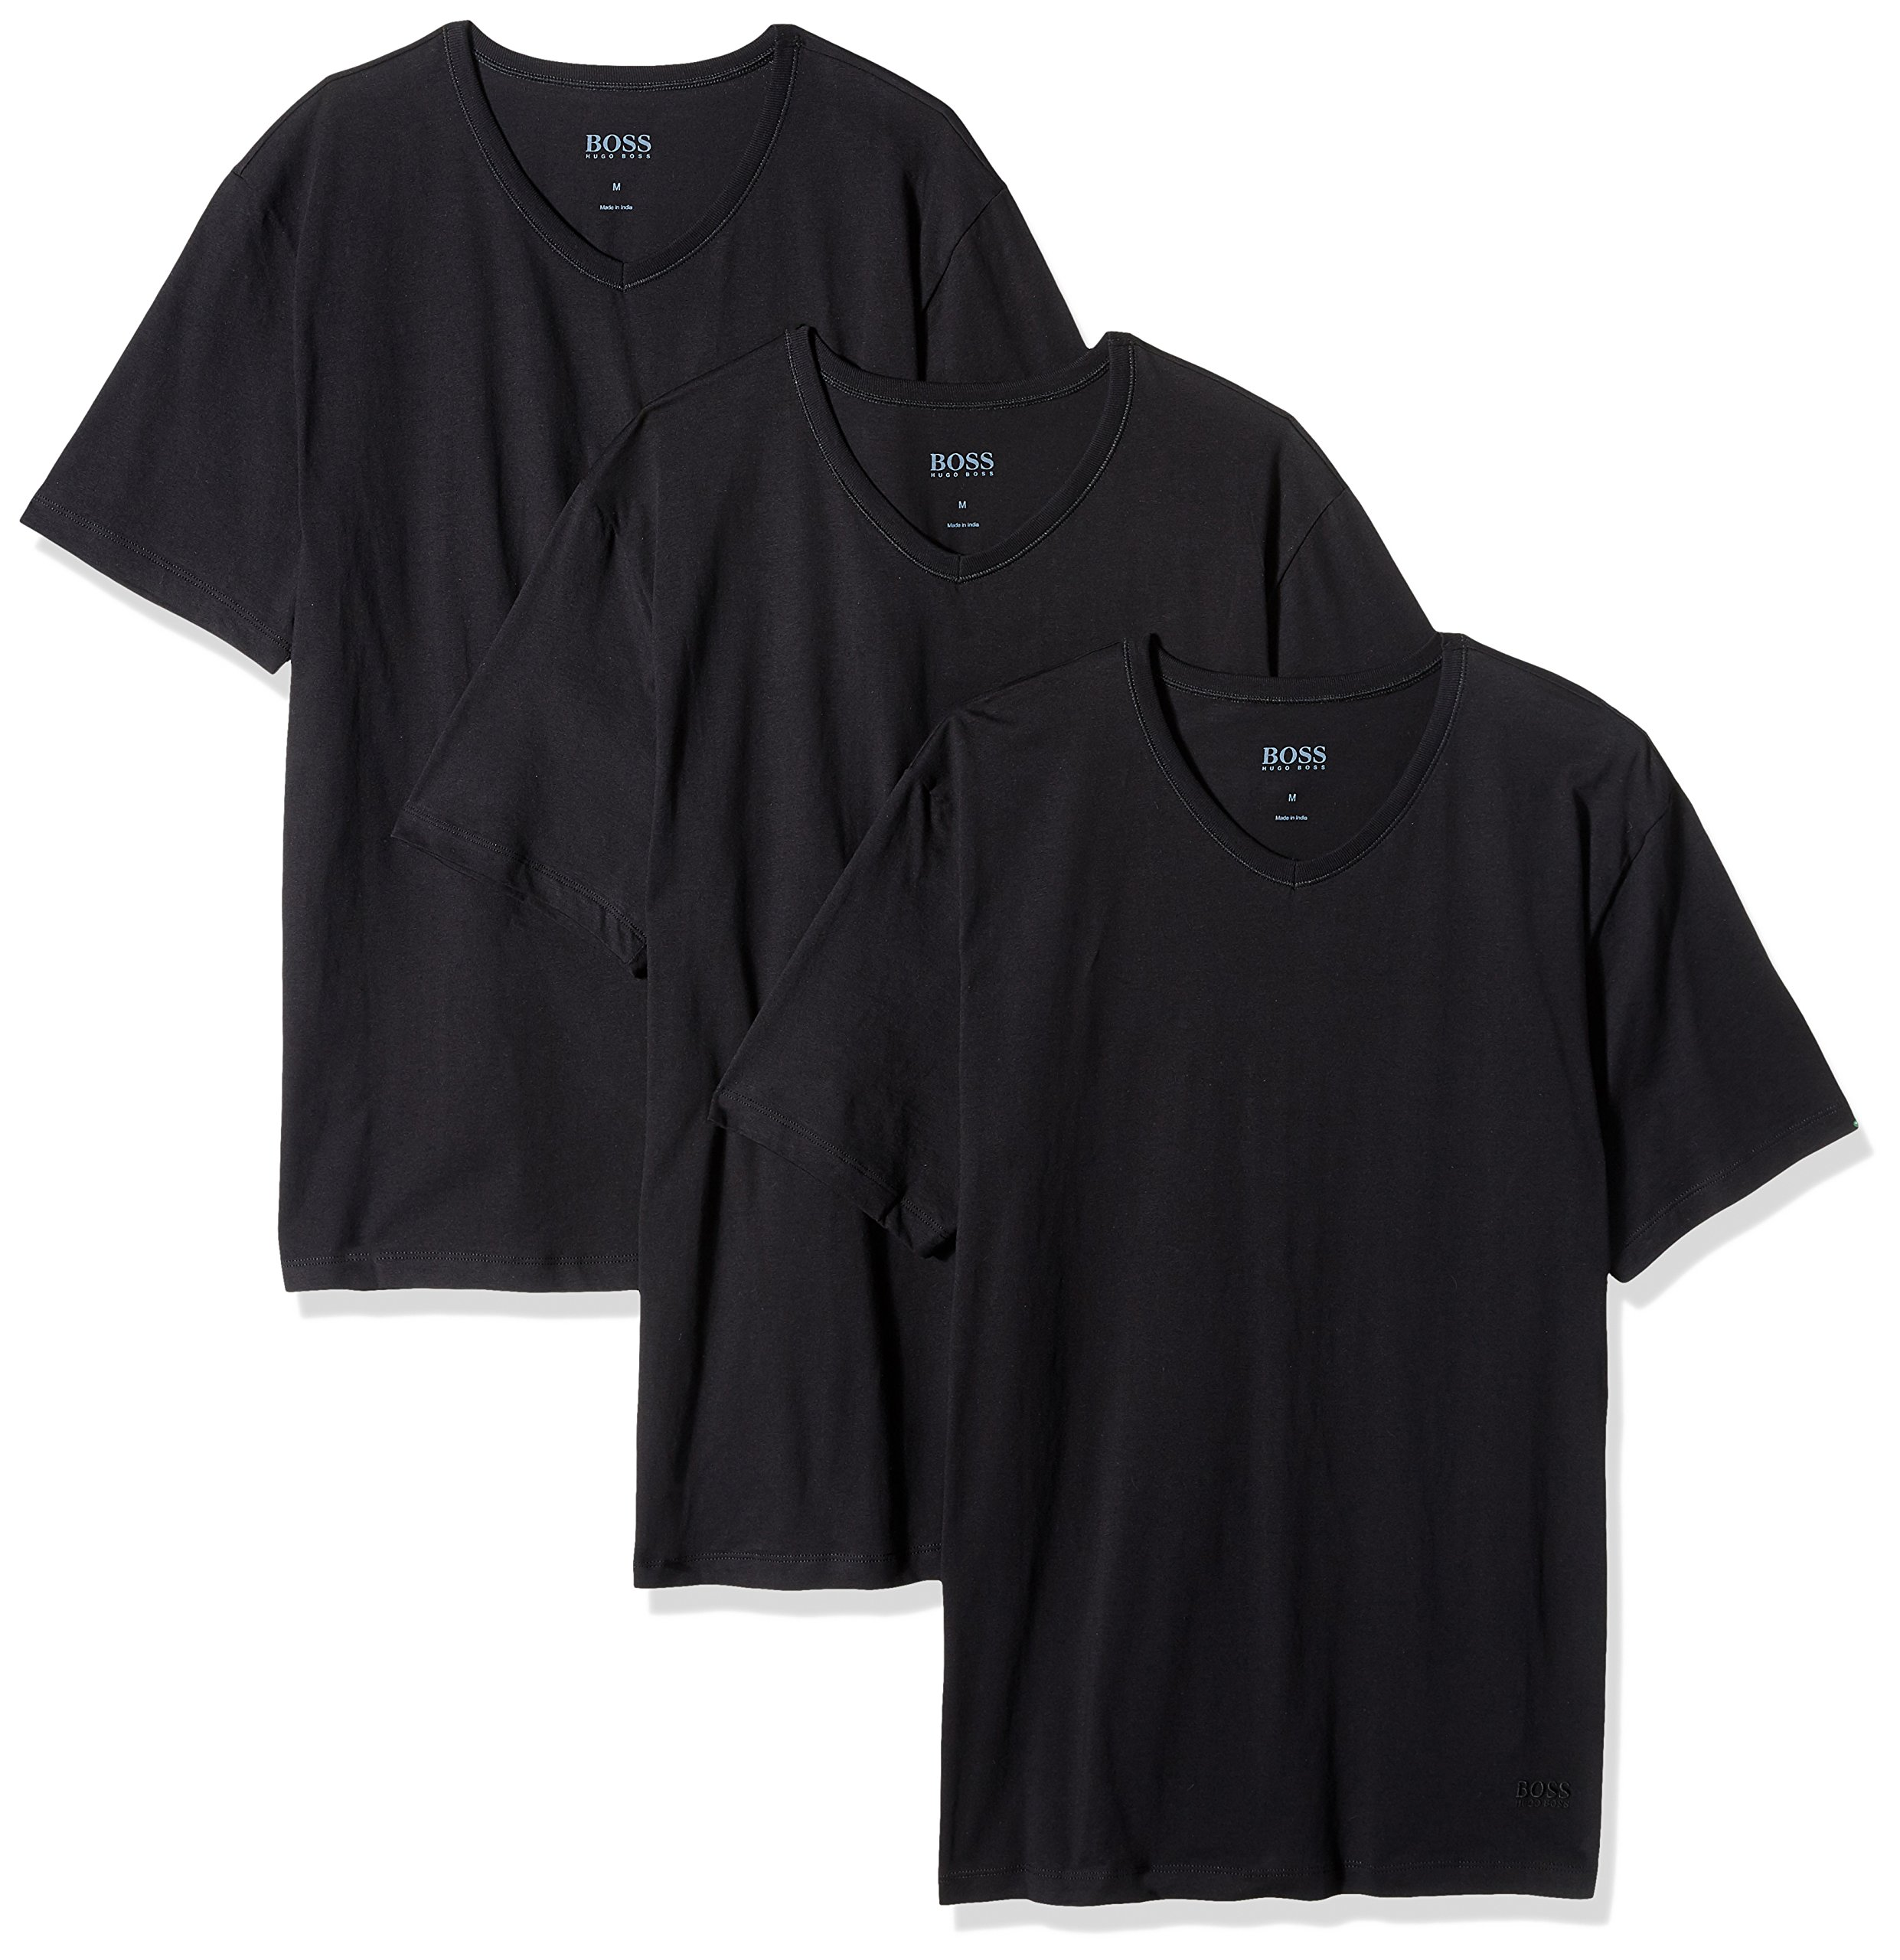 Hugo Boss BOSS Men's Cotton 3 Pack V-Neck T-Shirt, New Black, Large